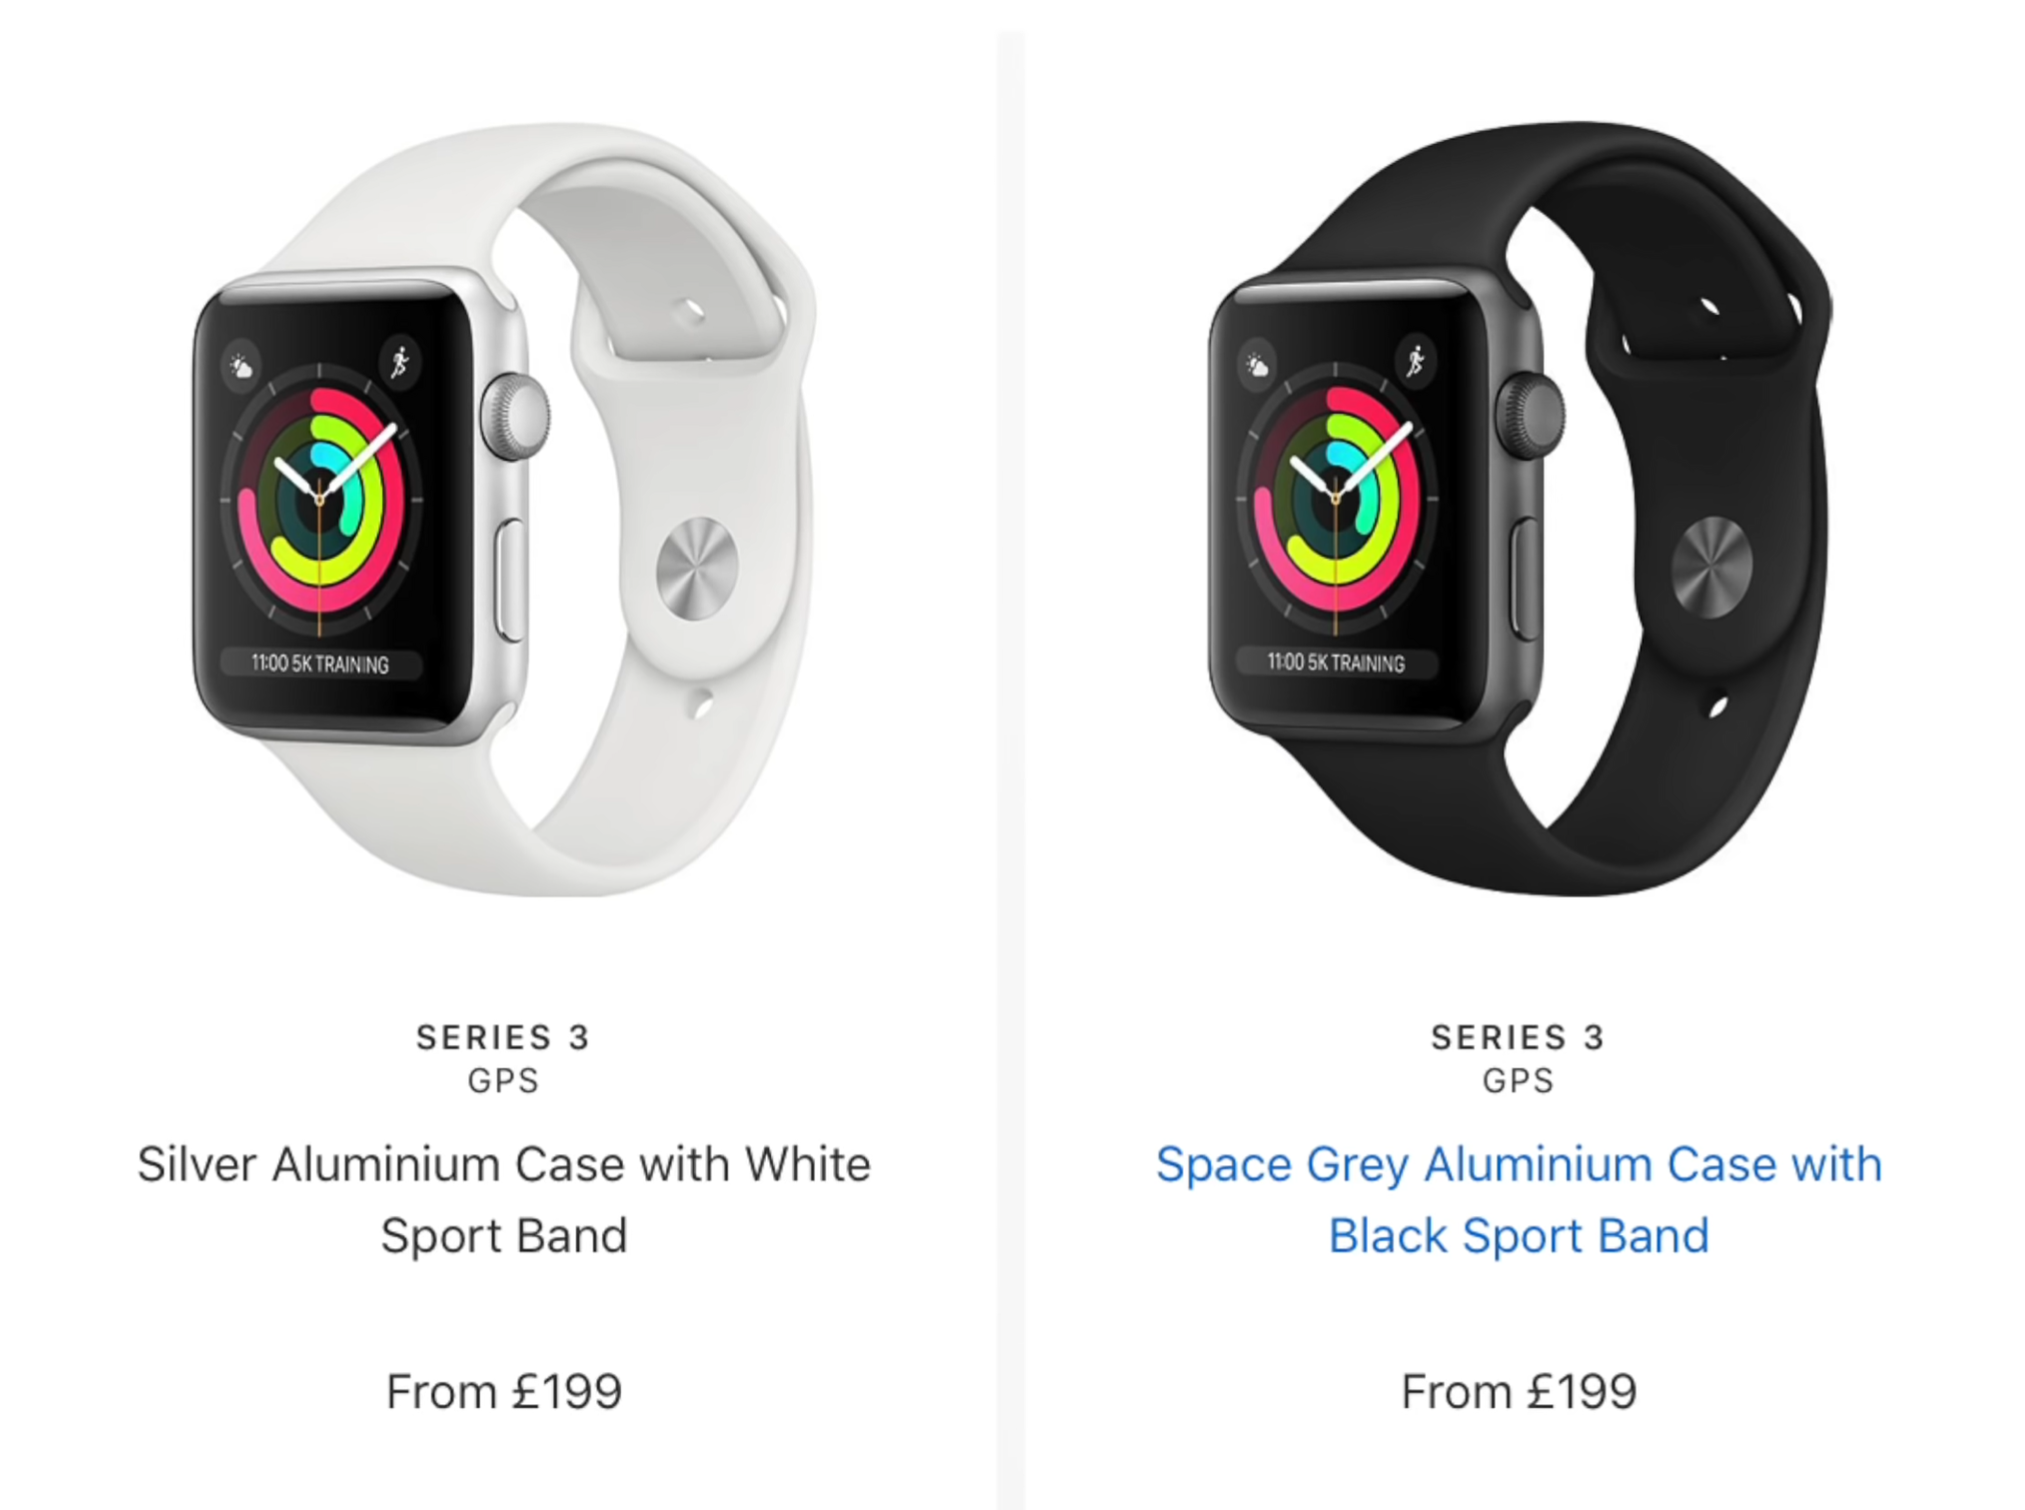 If you're looking for an inexpensive alternative to the Series 5 but with the experience of the Series 5, the Series 3 now starts from $200 (£200) brand new (Source: Apple)